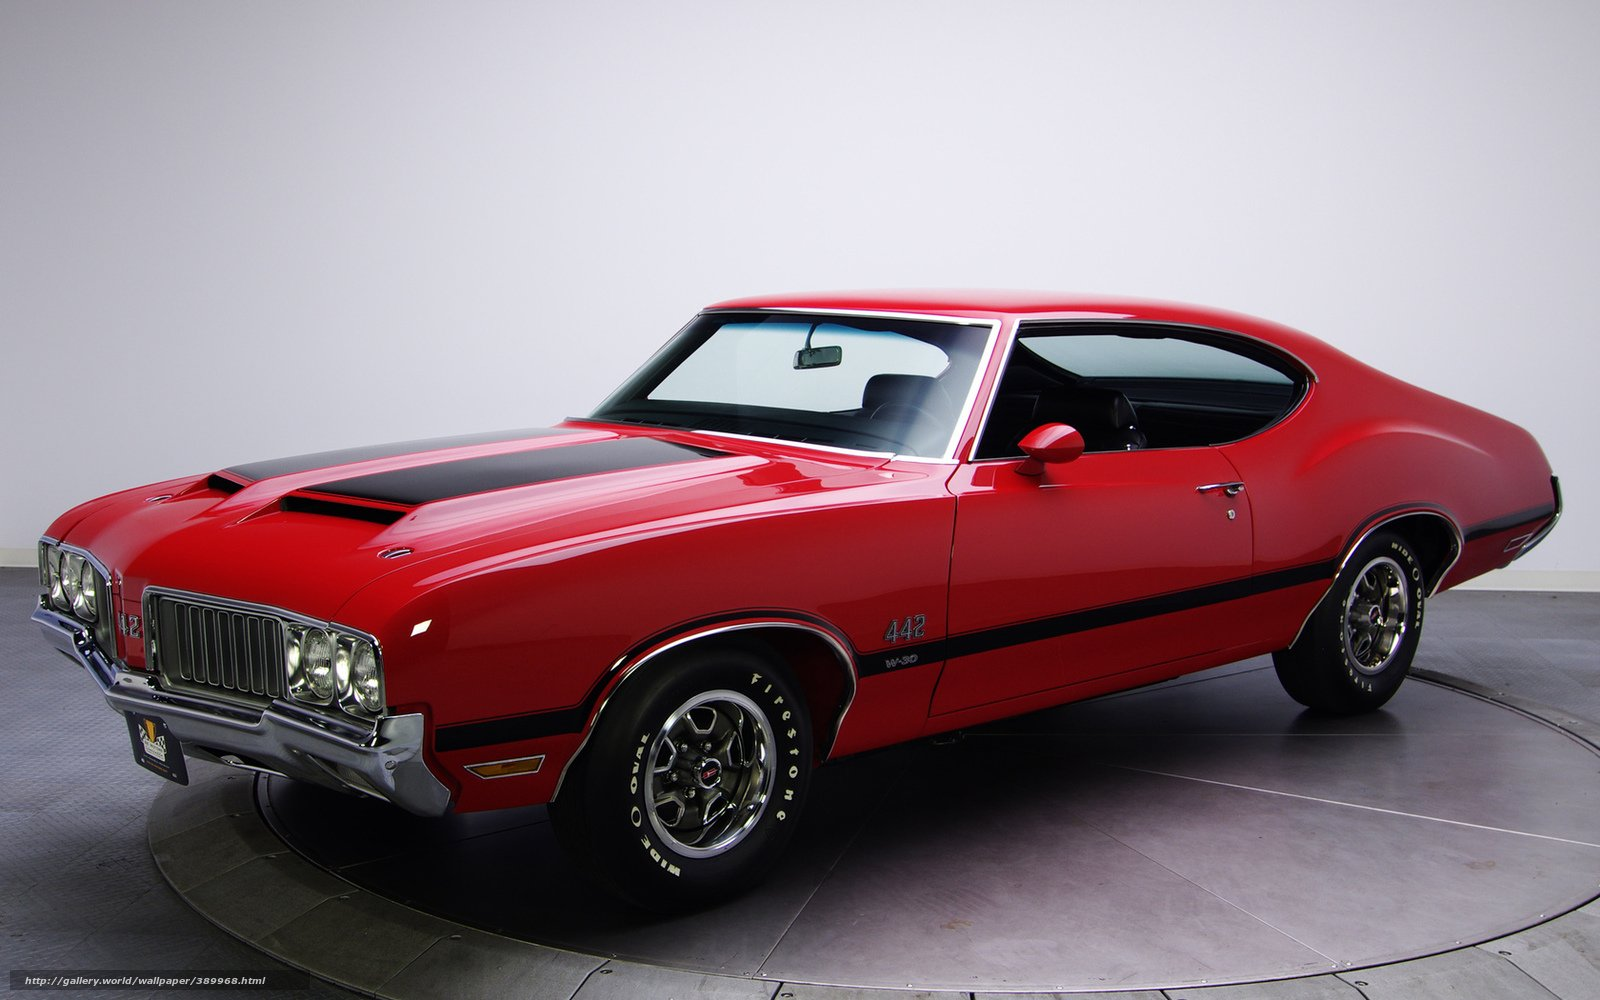 Download wallpaper Oldsmobile muscle car retro classic desktop 1600x1000